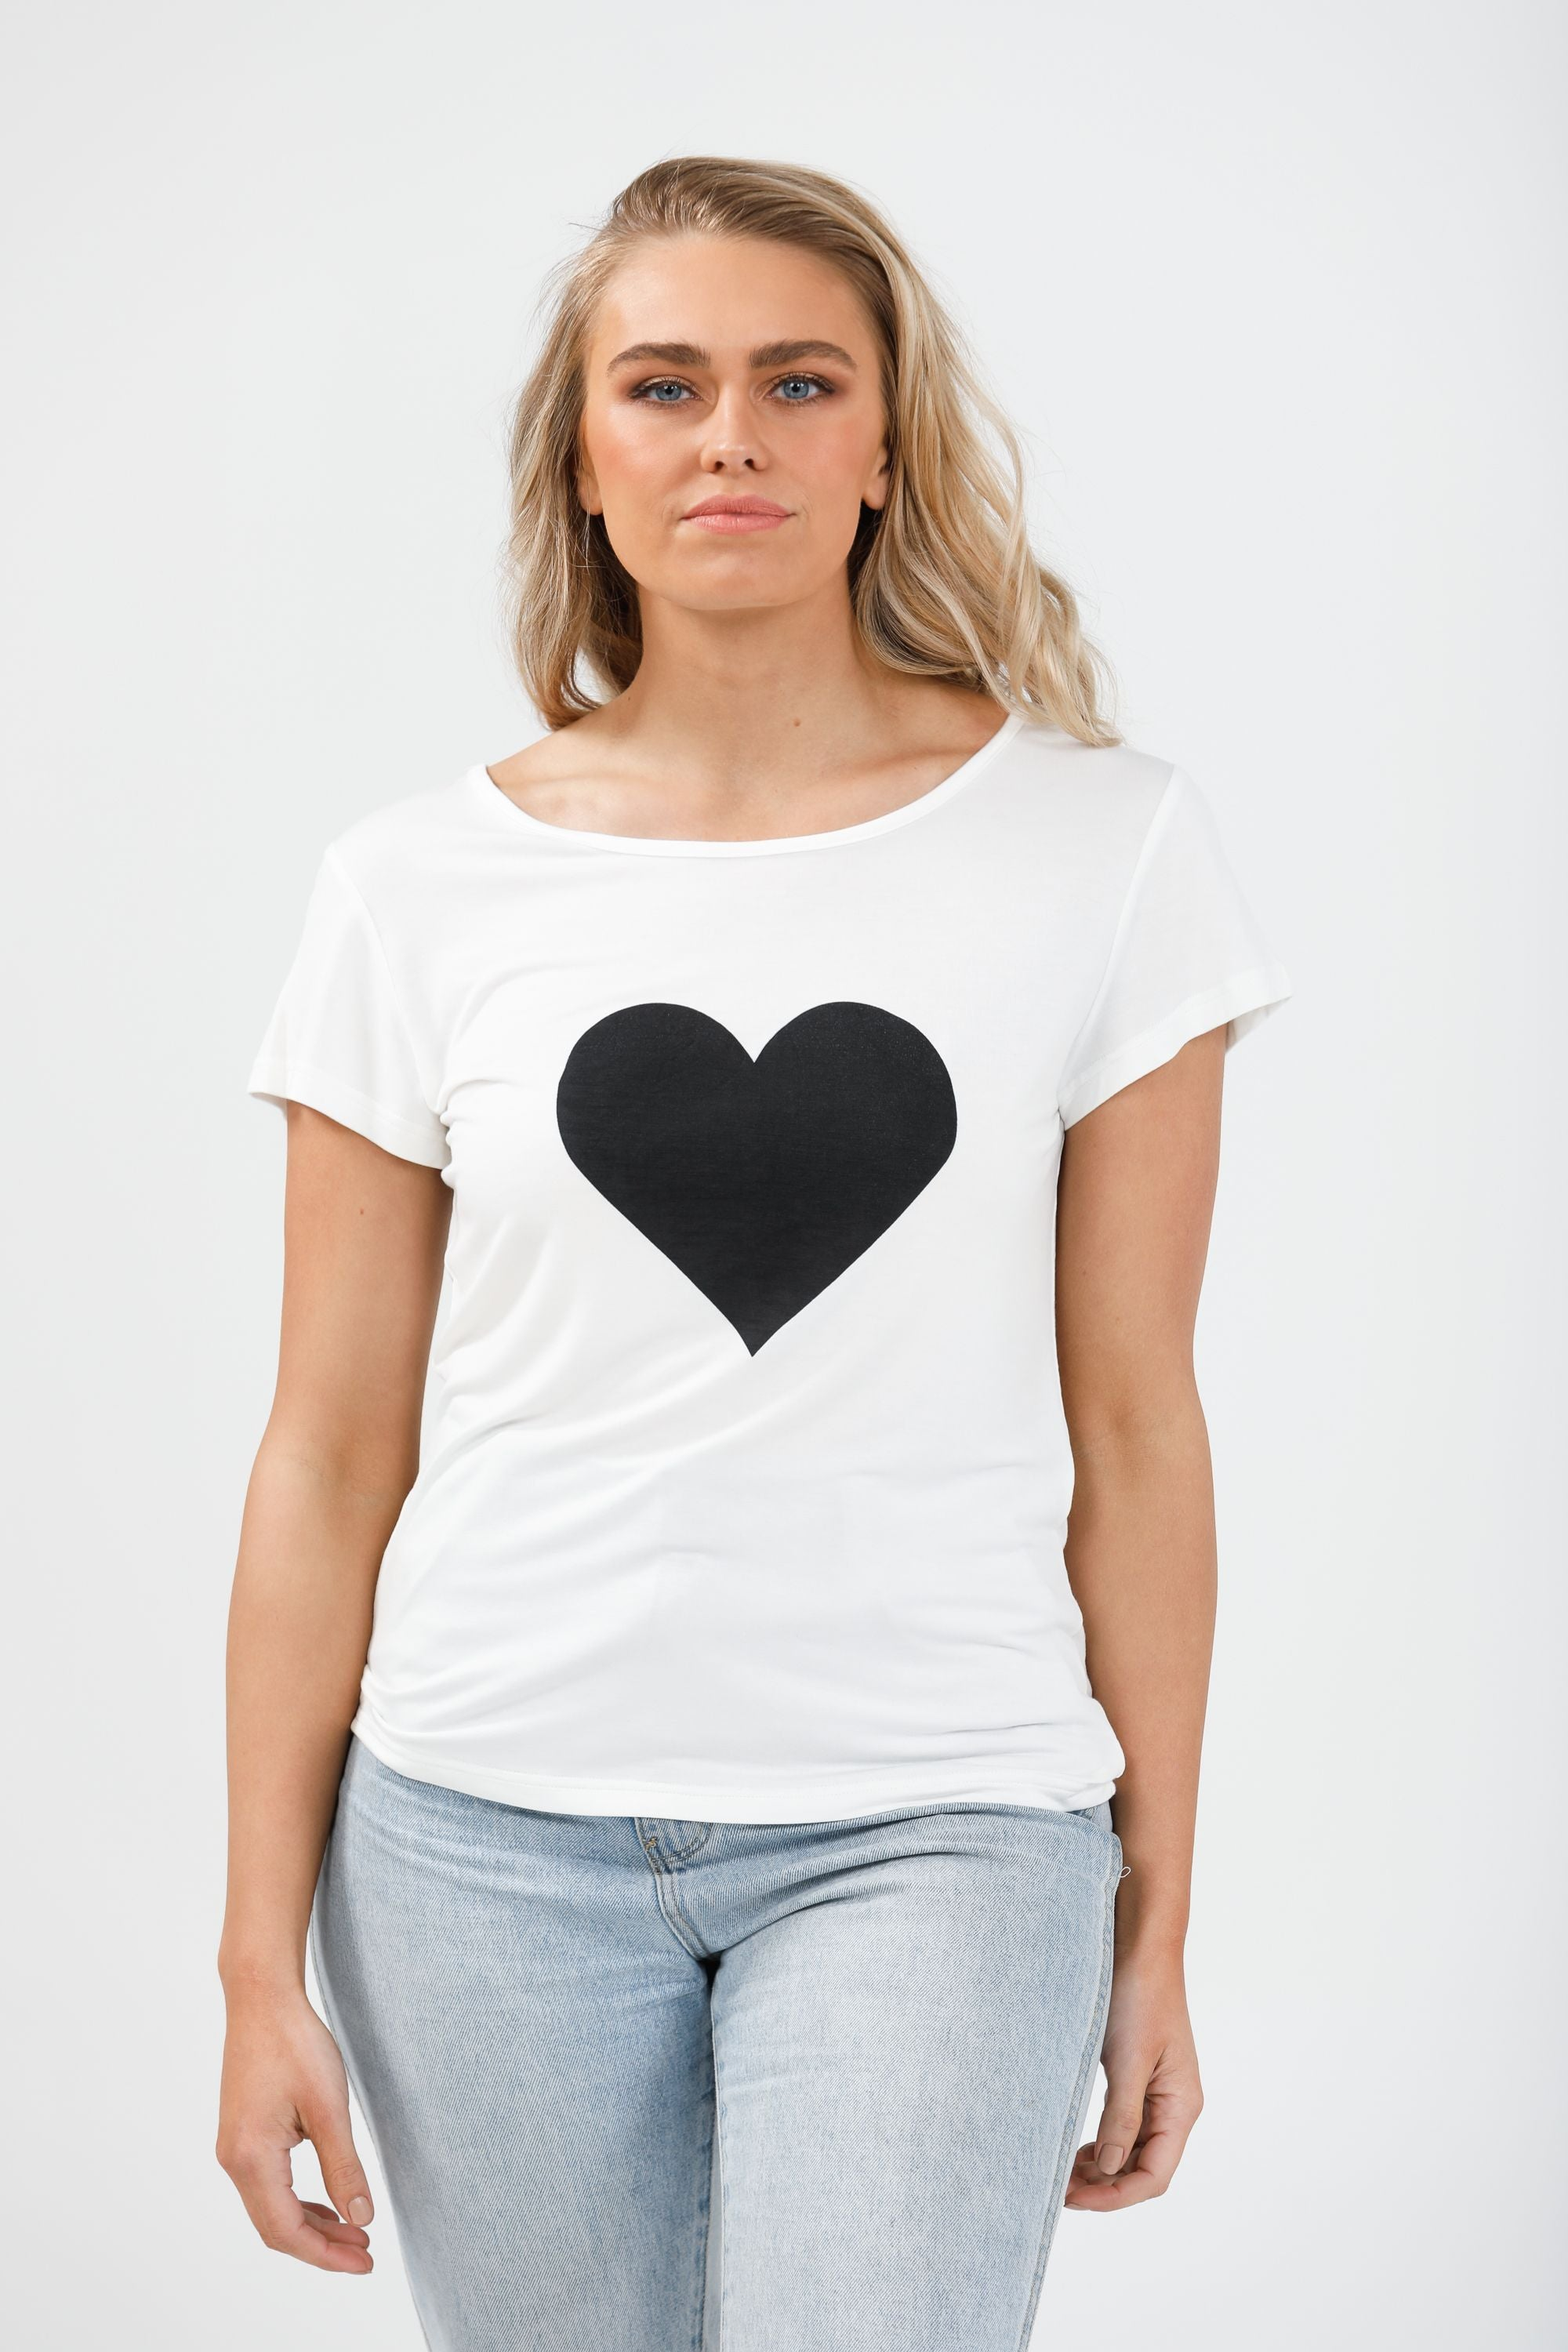 SS Logo Tee HEART in White & Black